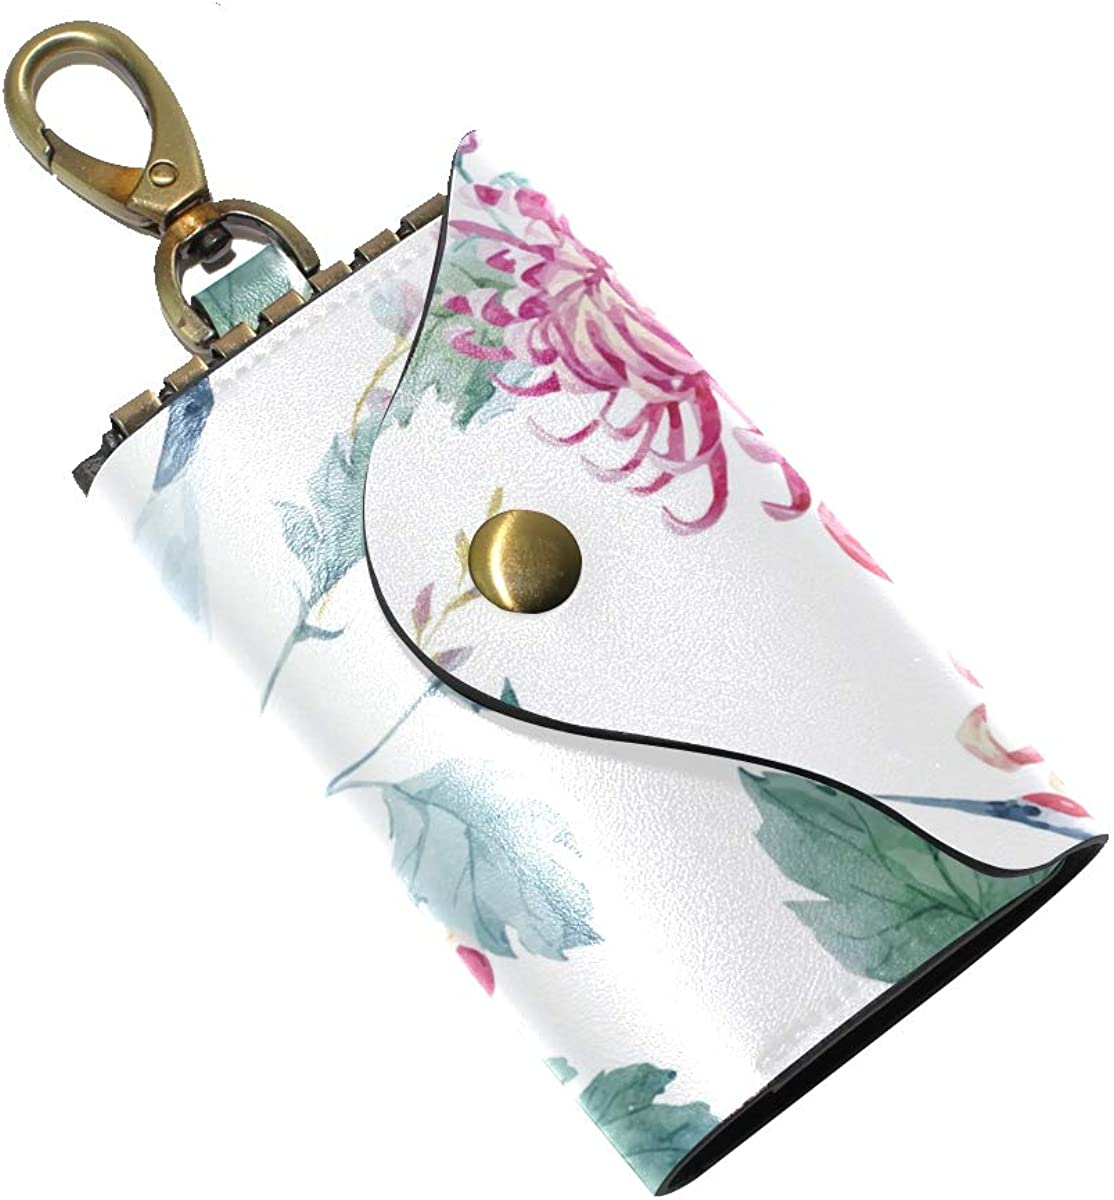 KEAKIA Watercolor Crane Pattern Leather Key Case Wallets Tri-fold Key Holder Keychains with 6 Hooks 2 Slot Snap Closure for Men Women